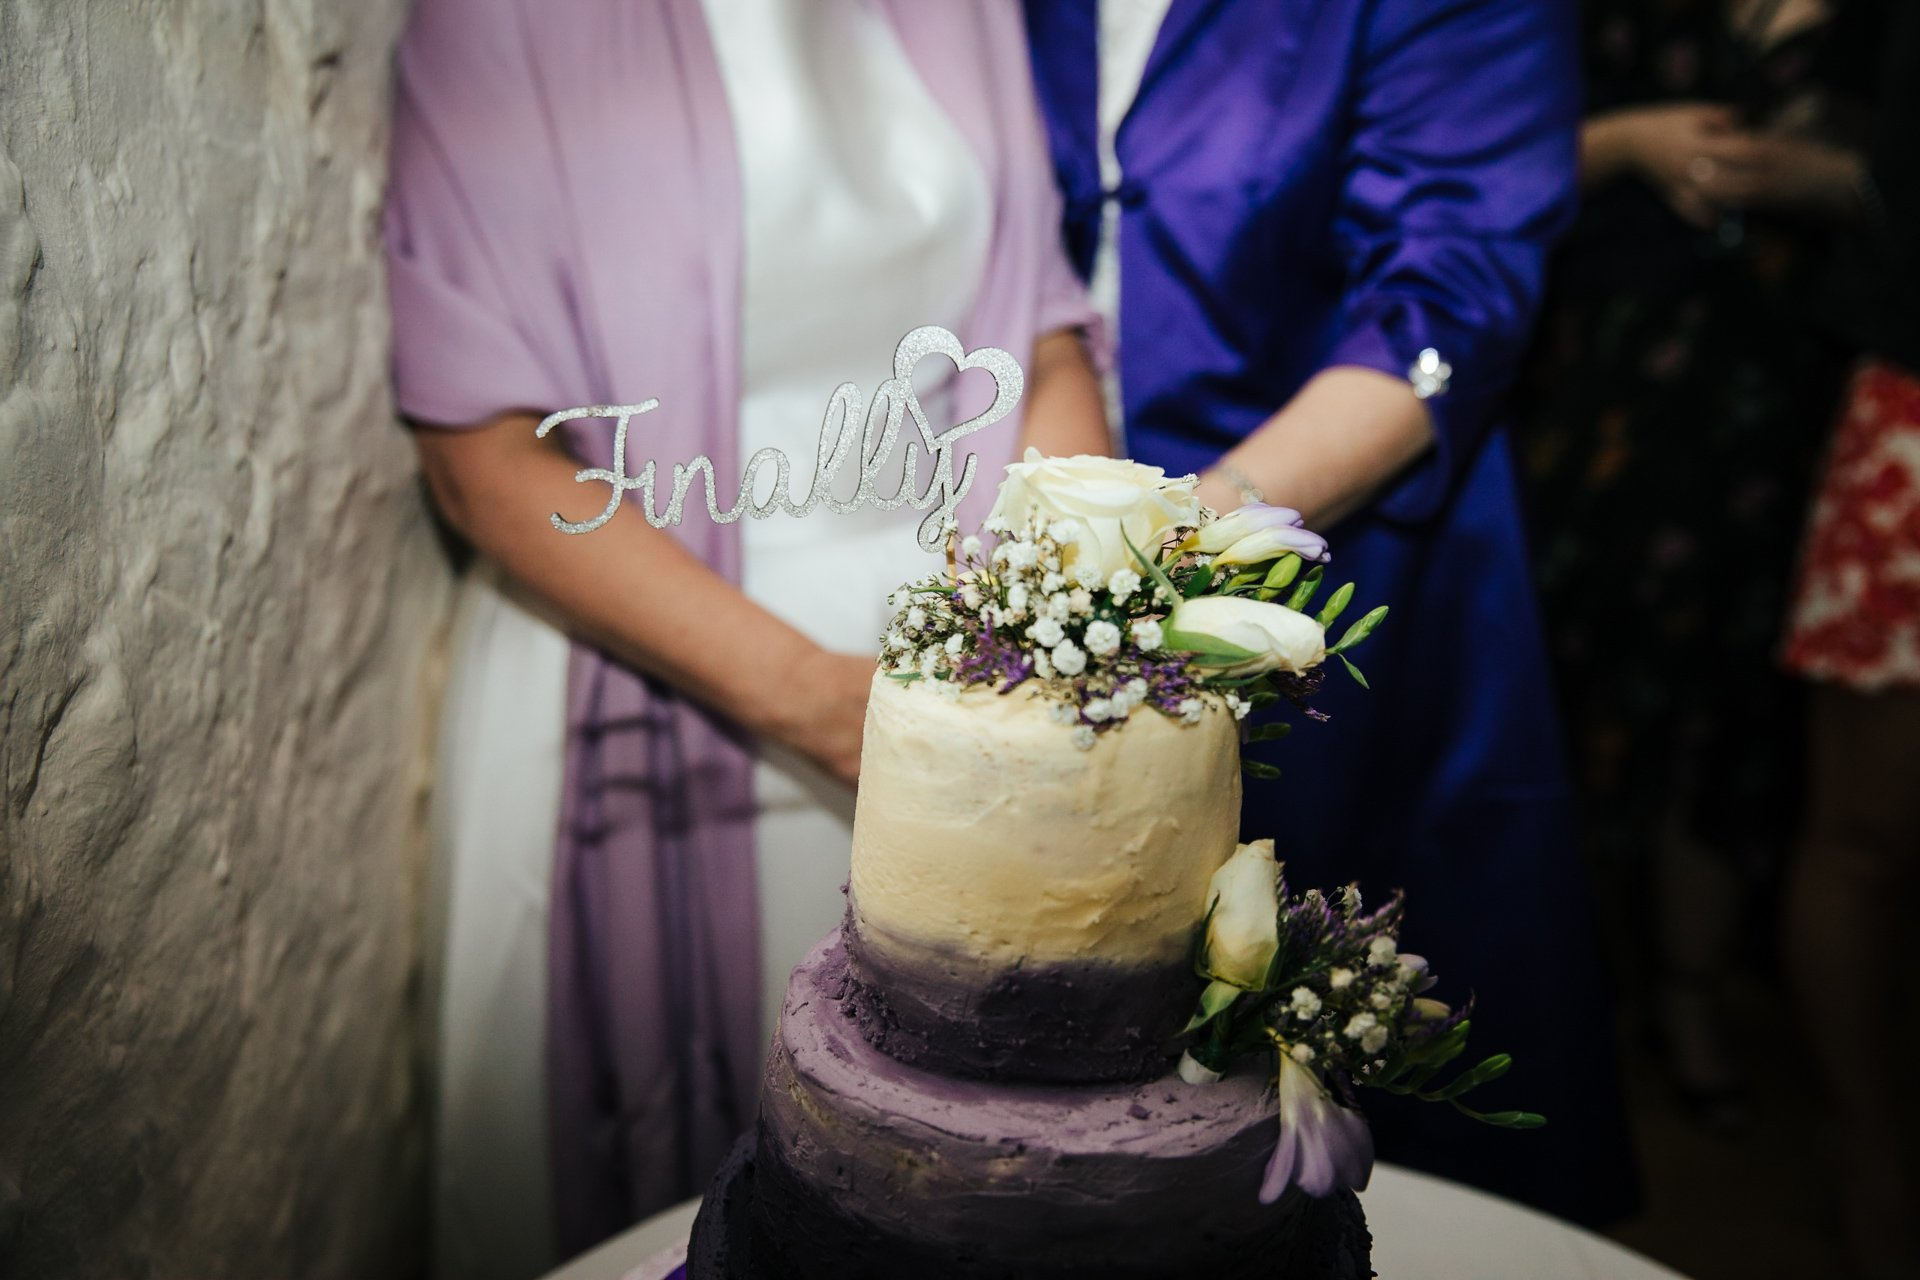 Gorgeous wedding cake with cake topper saying 'finally' with Brides behind